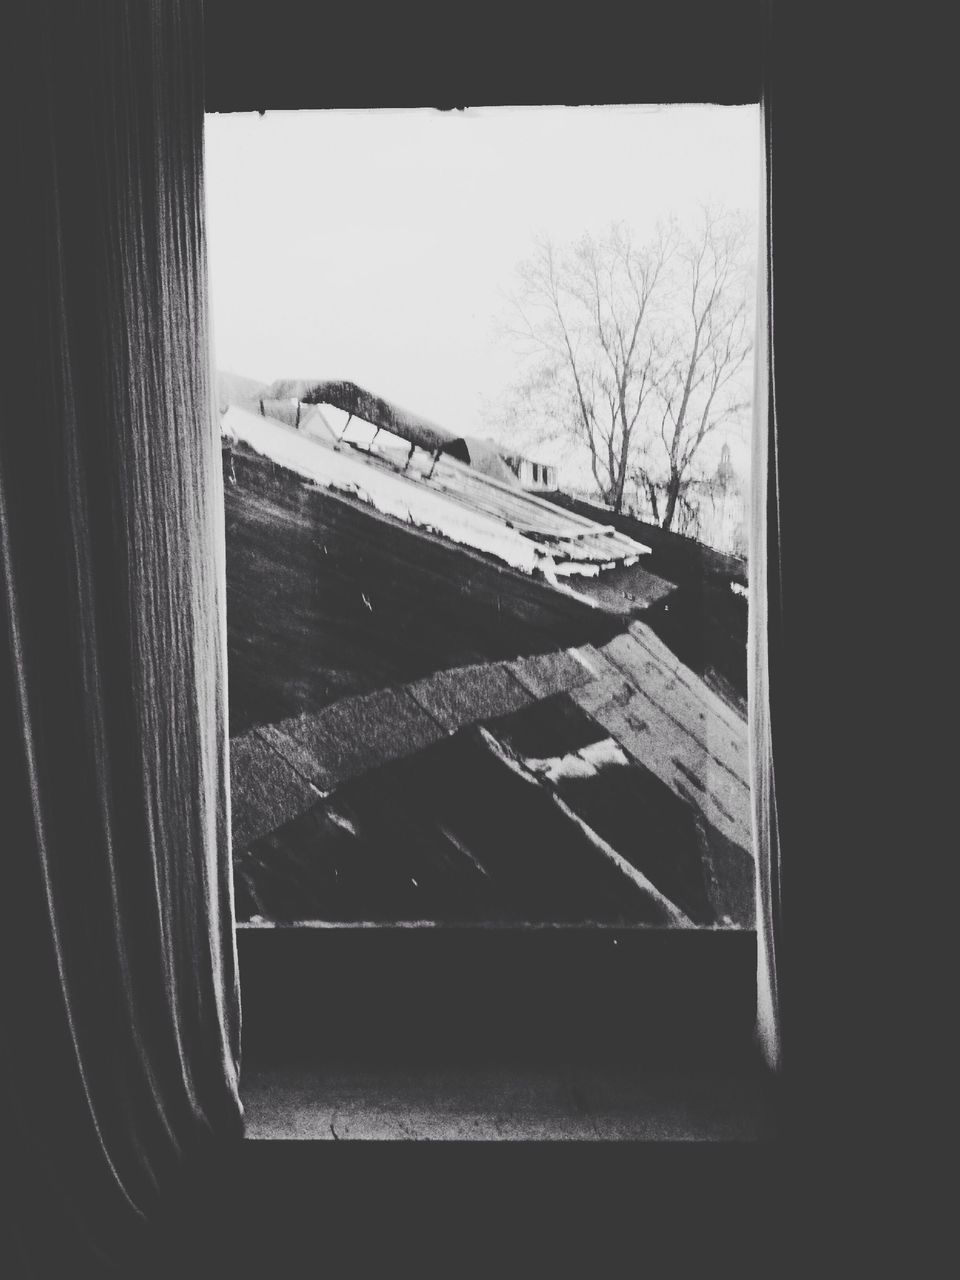 Old wooden structures seen through window